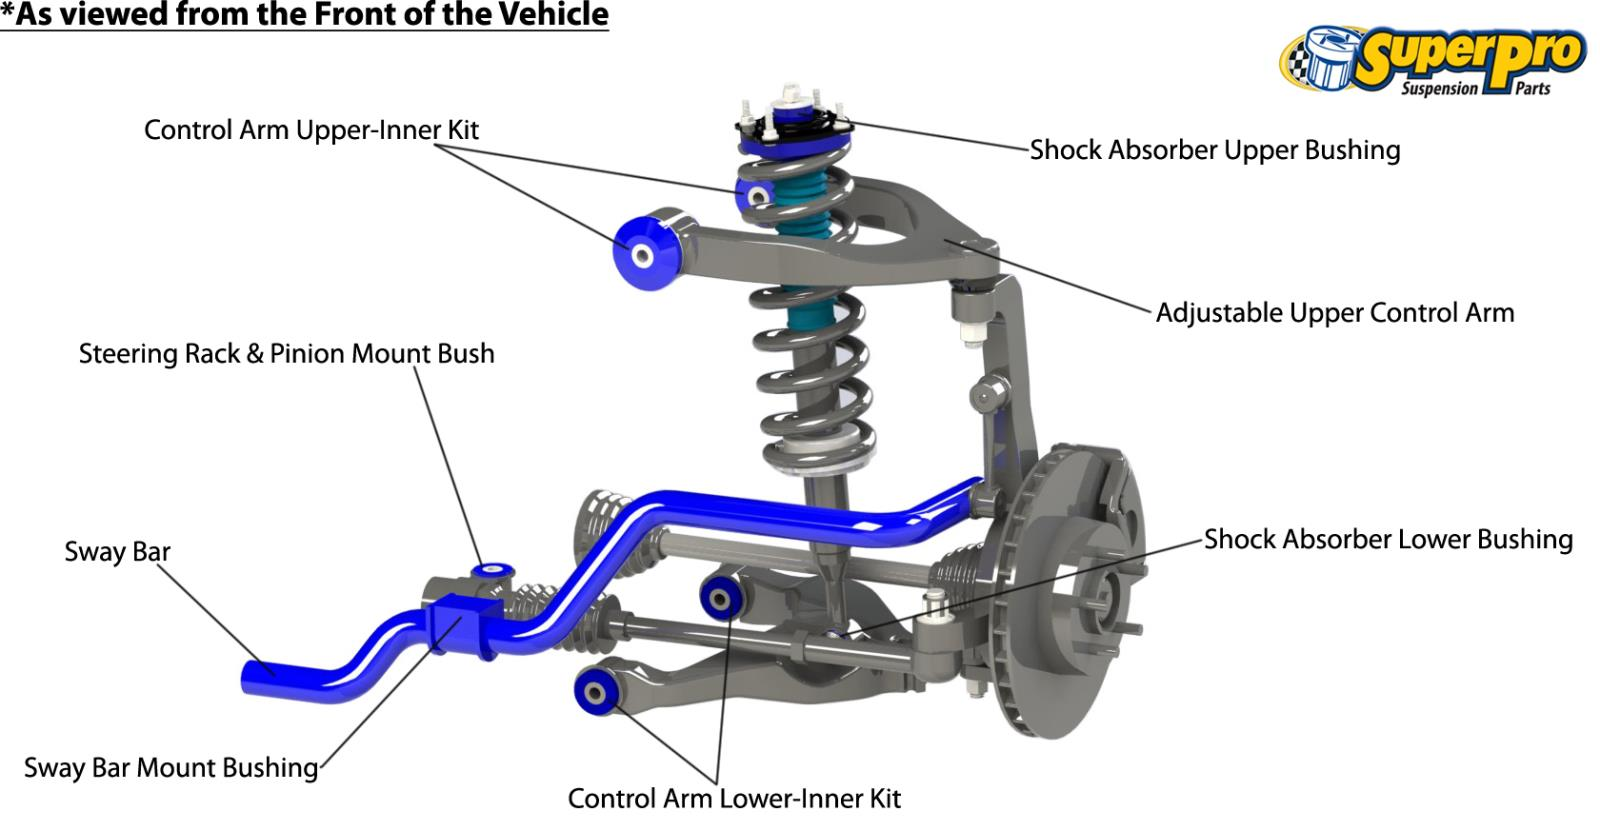 Front suspension diagram for FORD AUSTRALIA EVEREST 2015-07/2018 - UA